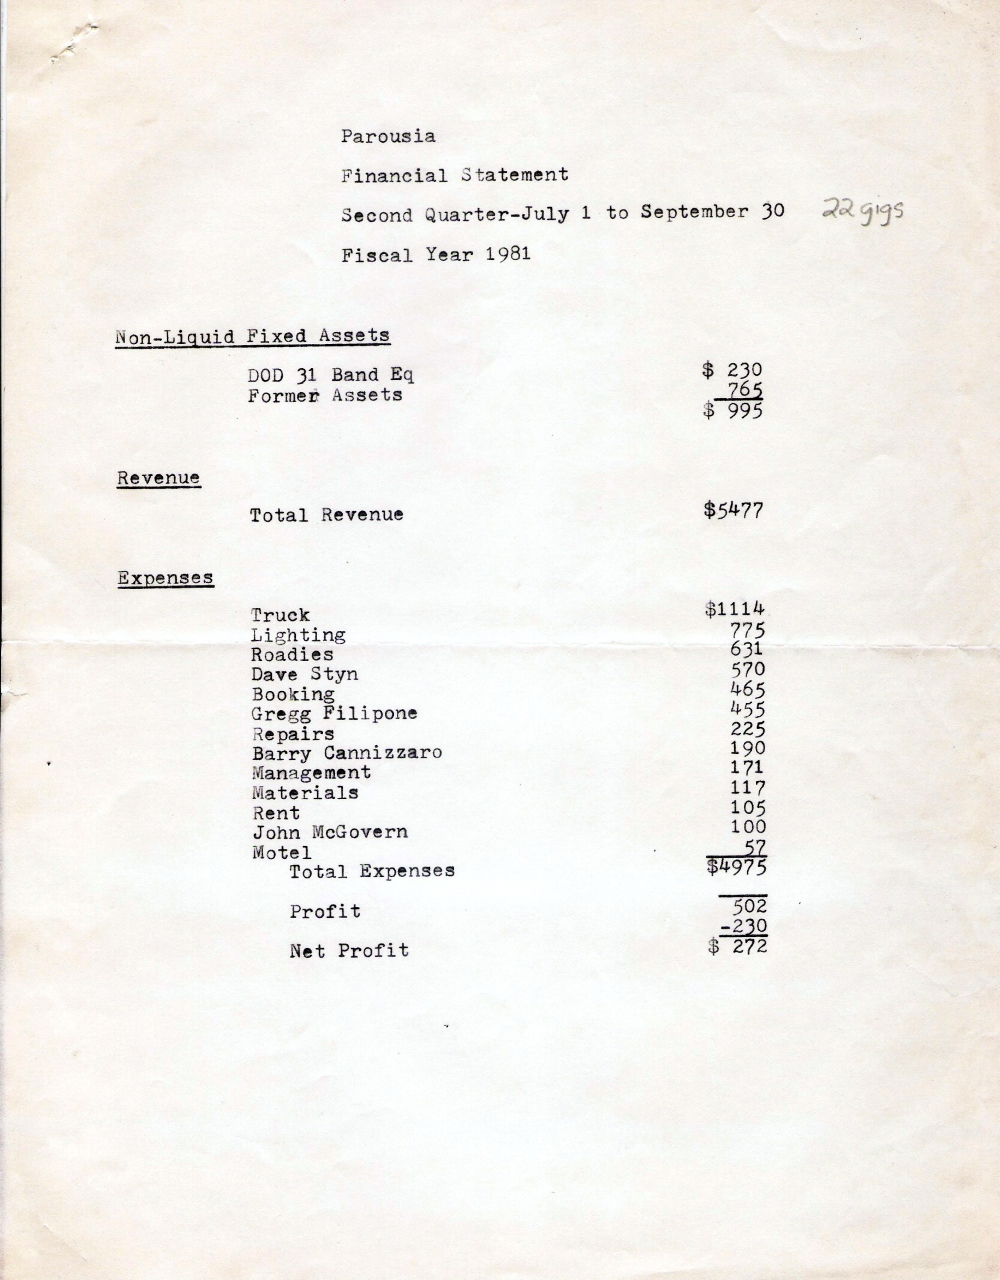 Financial statement 2nd QTR 1981